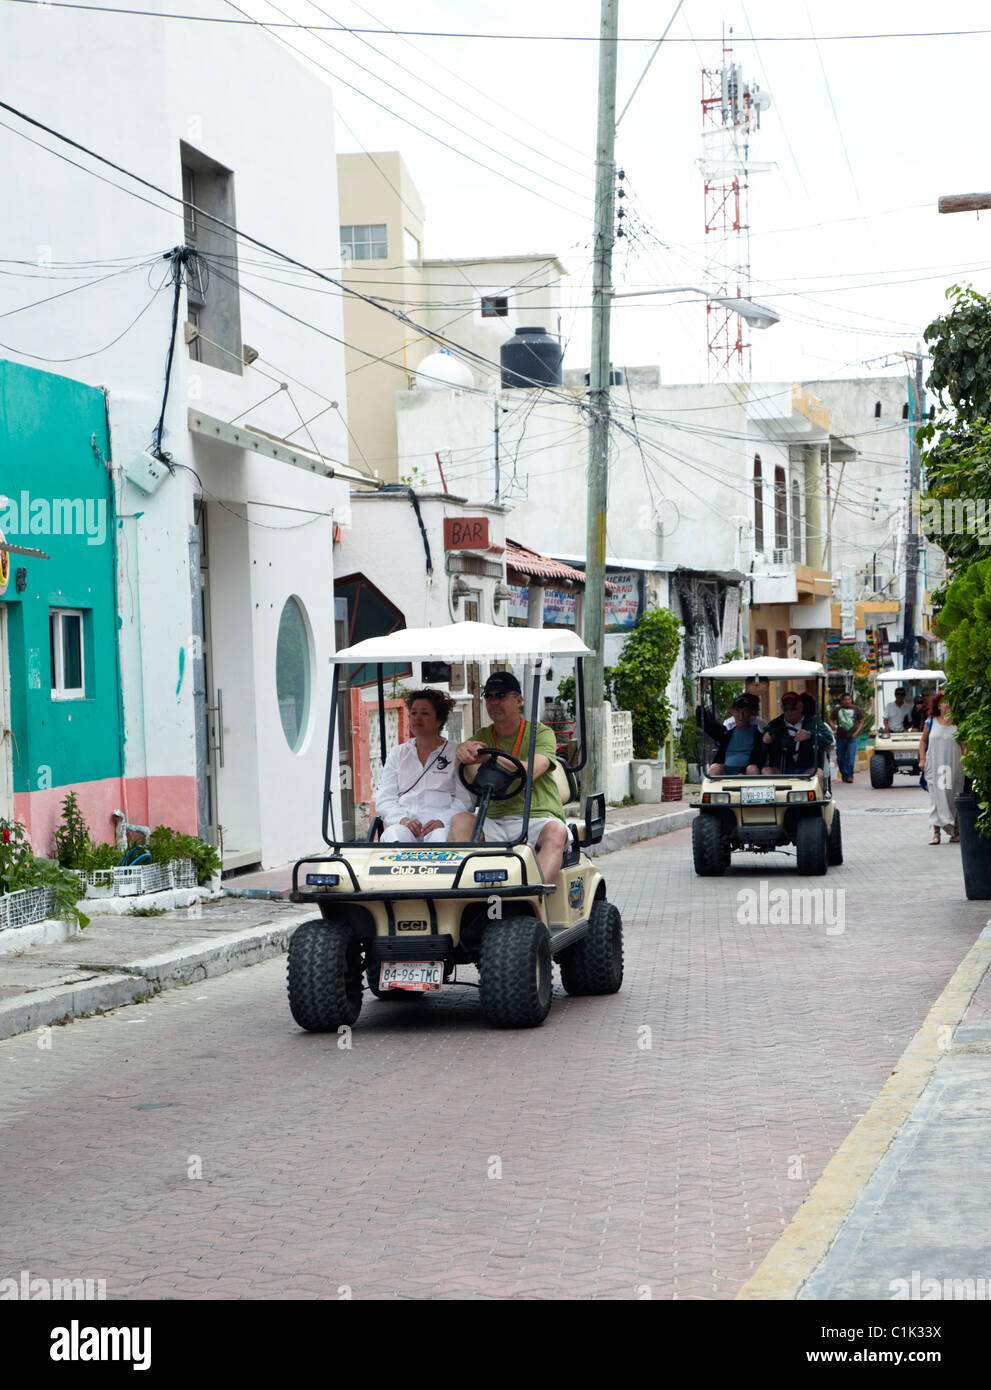 Golf Buggy Cars In  Isla Mujeres Yucatan Mexico - Stock Image